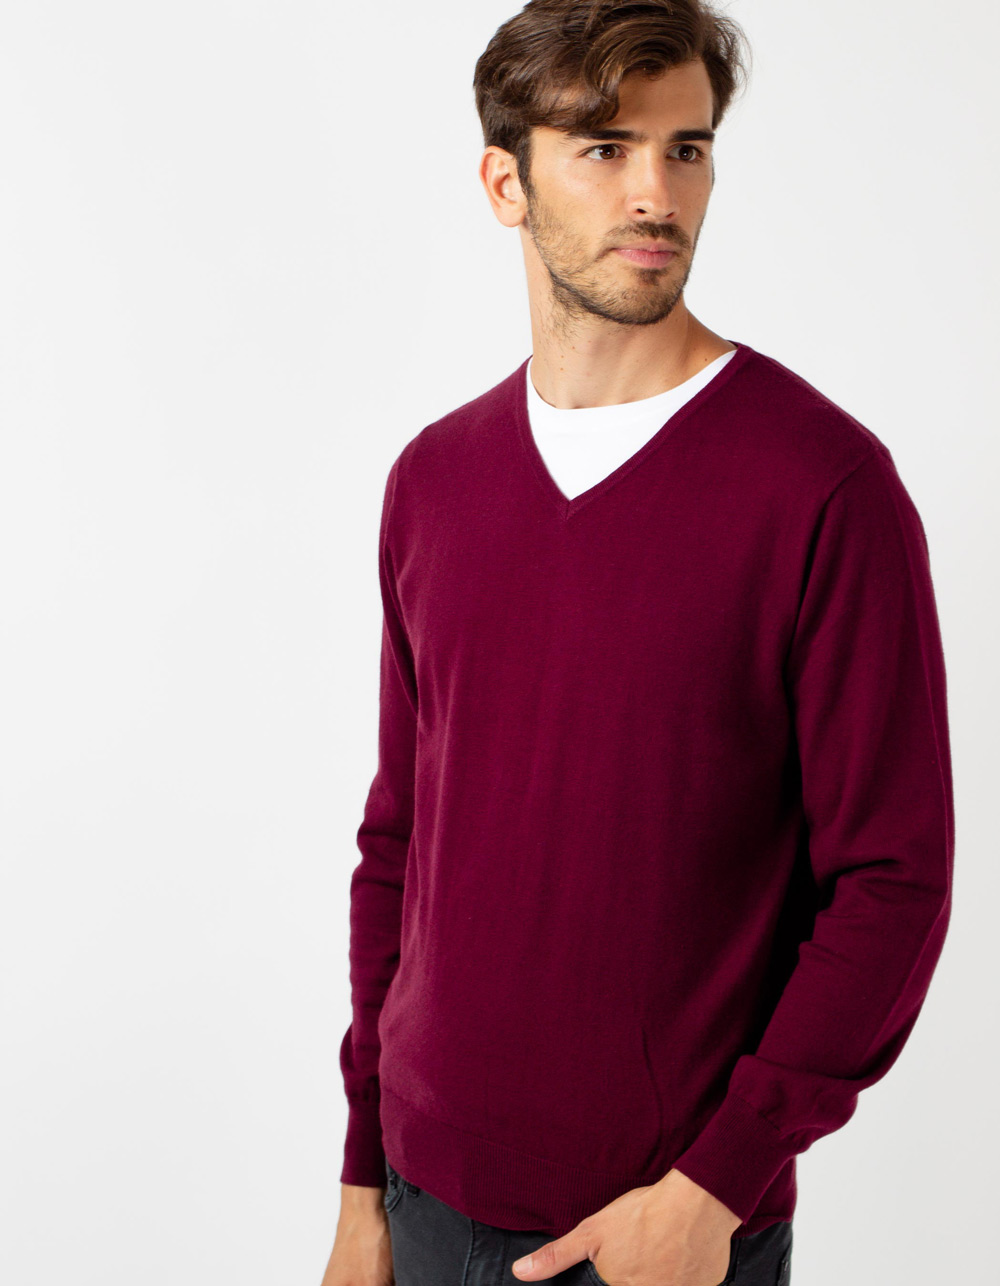 Garnet v-neck sweater